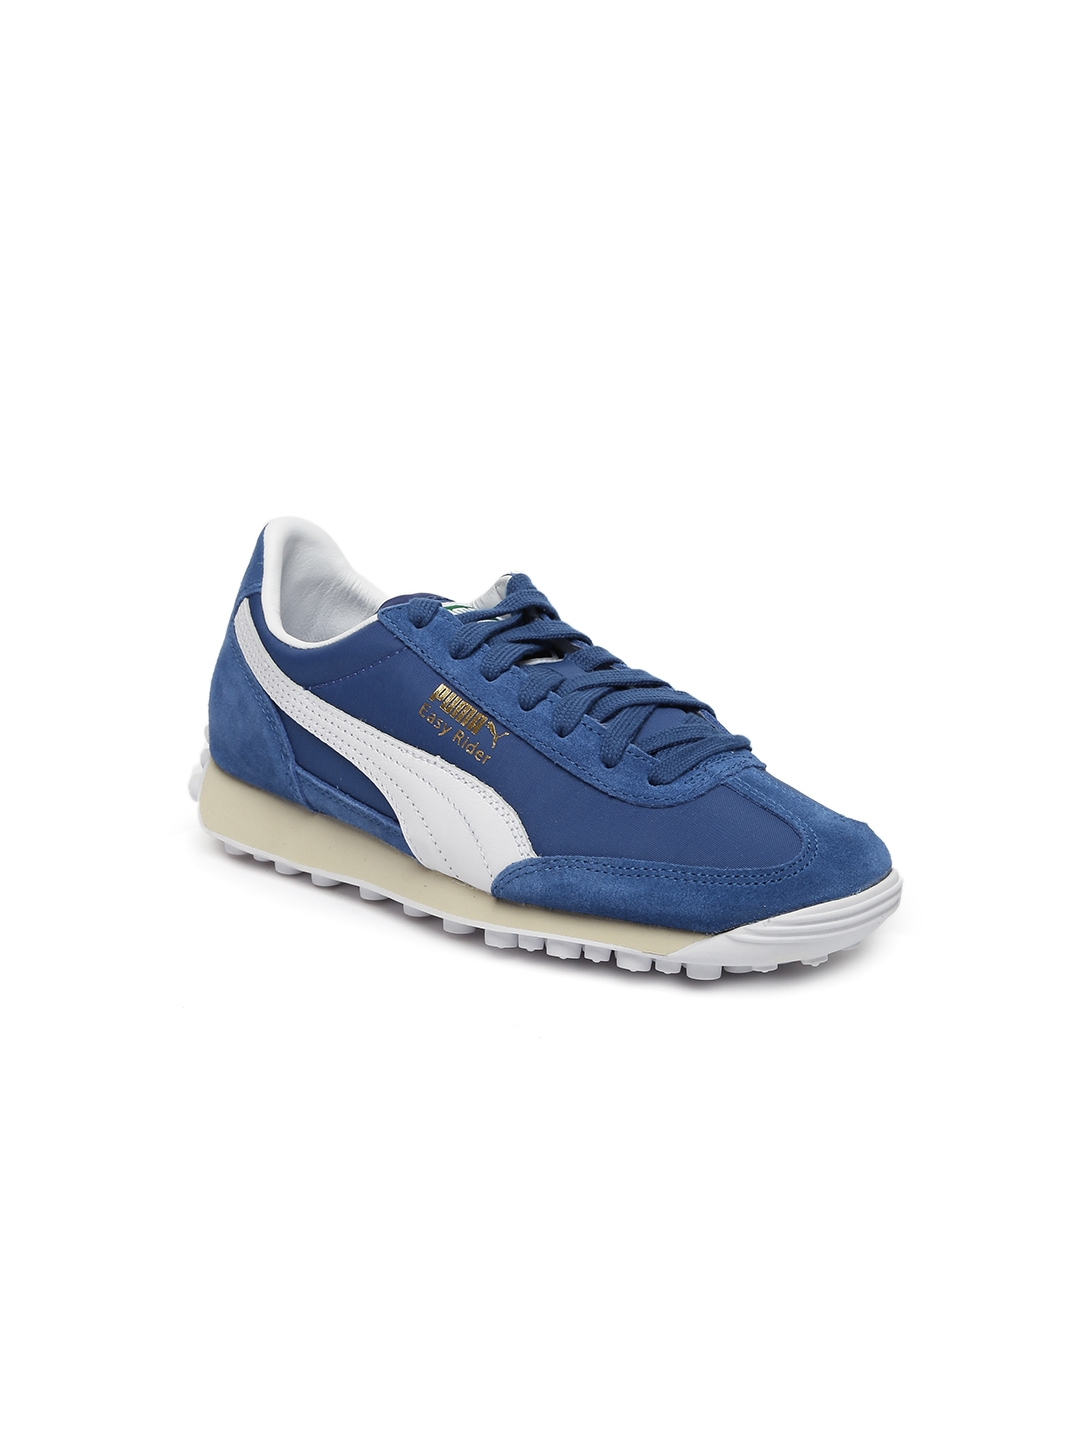 6fc1d46f5529 Buy Puma Unisex Blue Easy Rider VTG Sneakers - Casual Shoes for ...